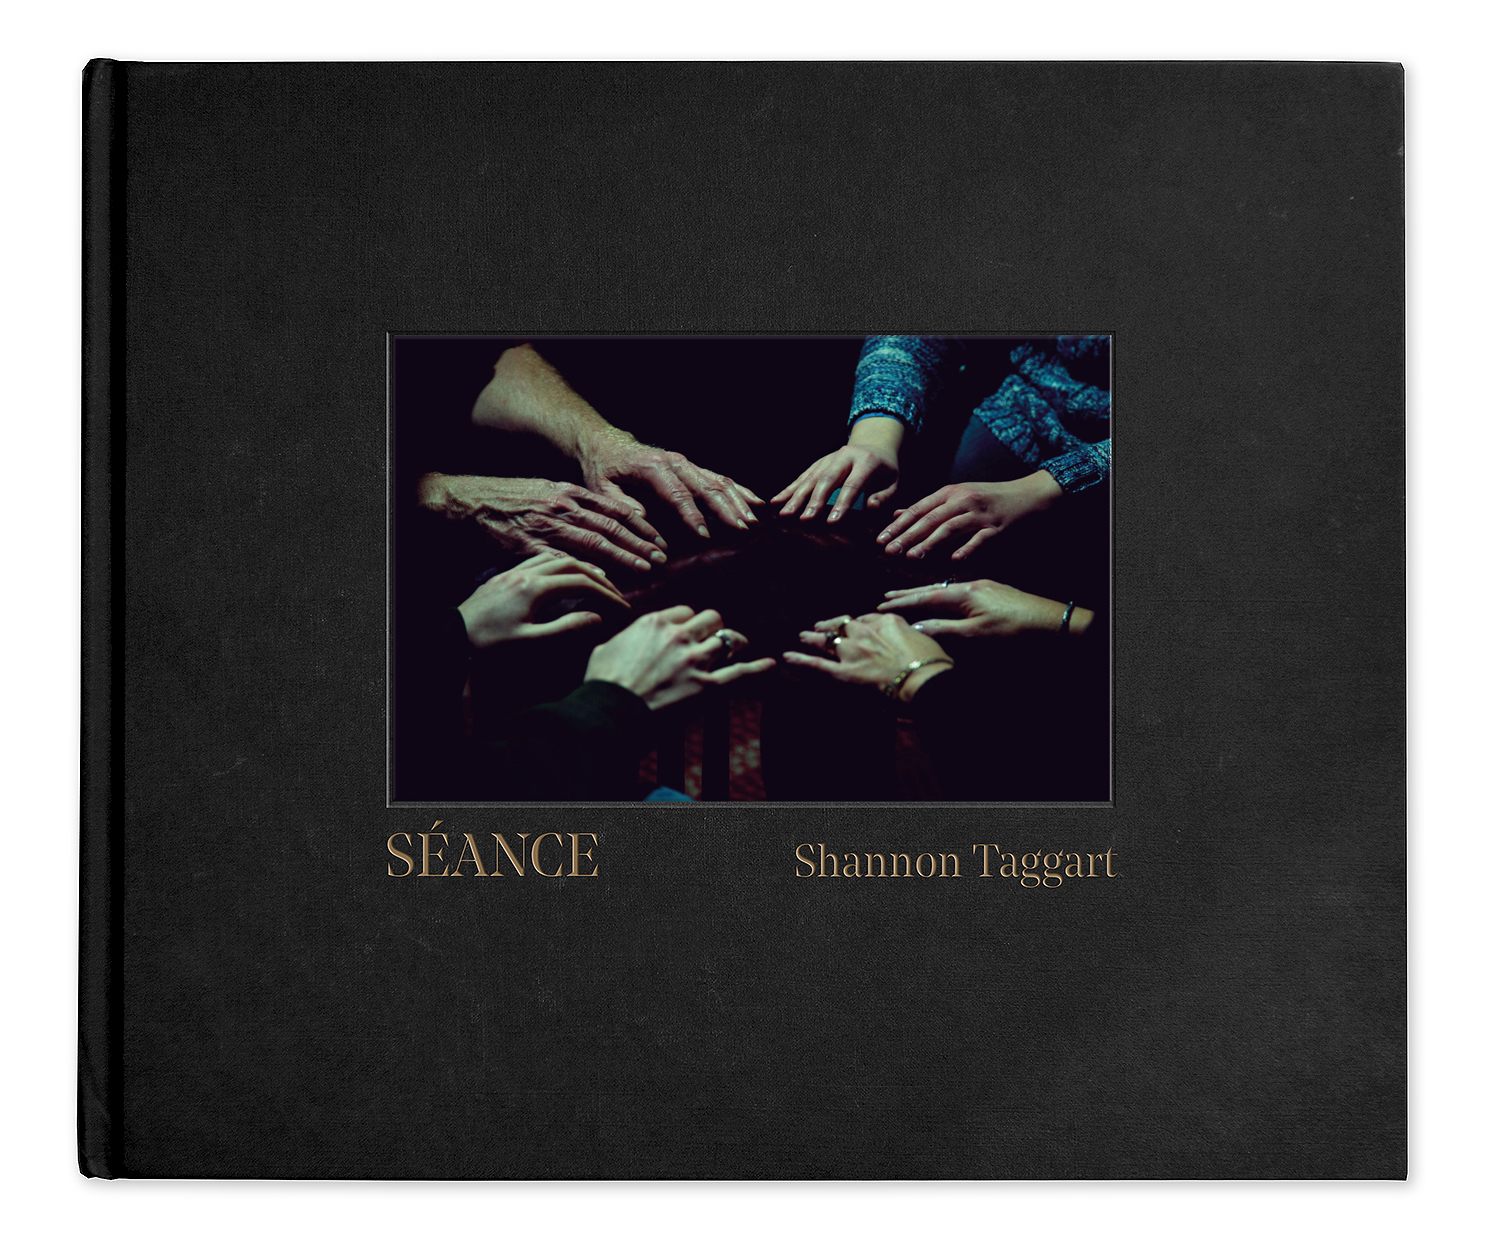 Séance (2019) by SHANNON TAGGART